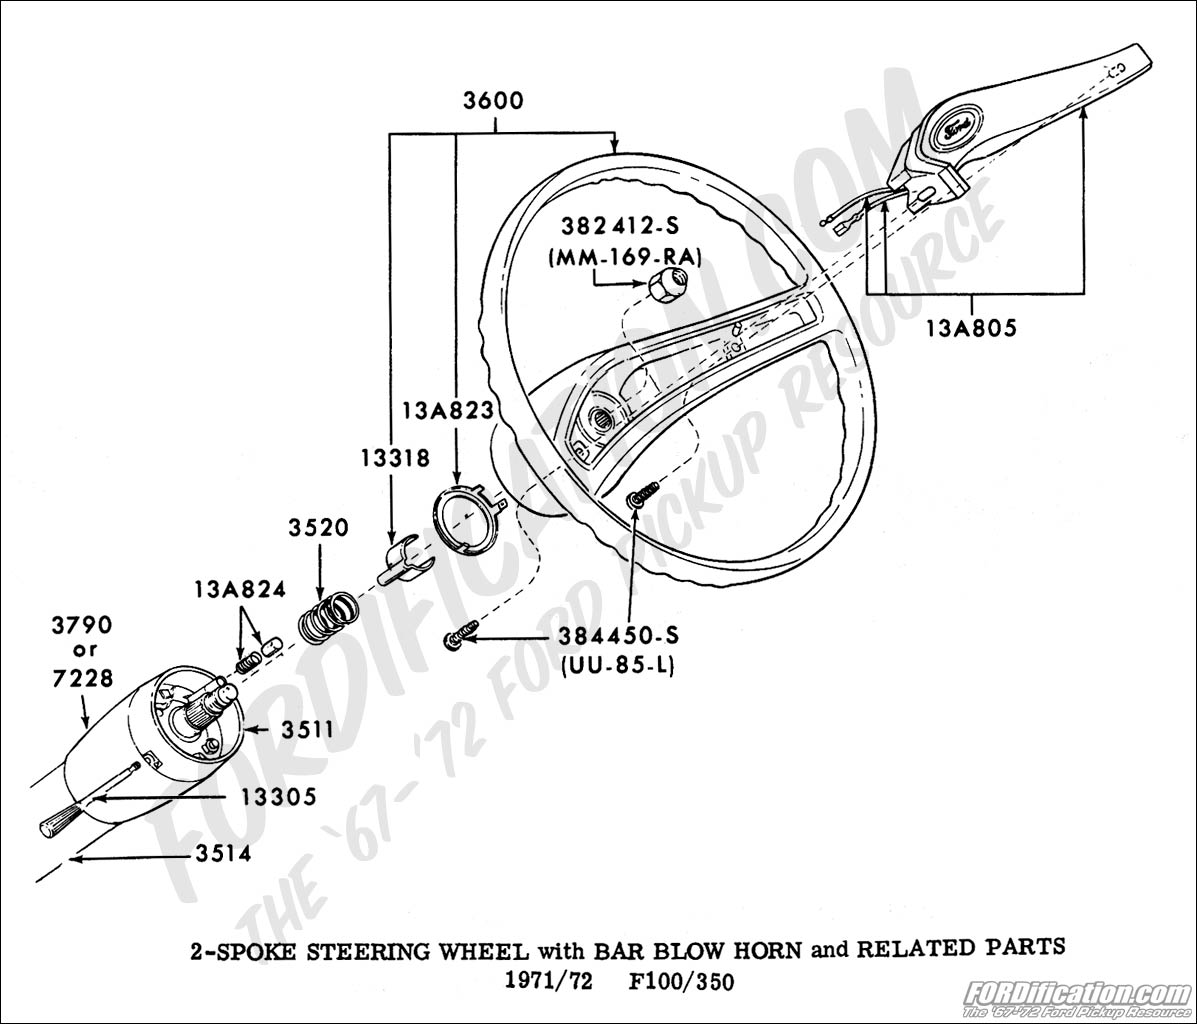 1968 chevelle wiring diagram with Schematics I on 3023933587 moreover P 0900c152801db3f7 besides RepairGuideContent also 1968 Mustang Wiring Diagram Vacuum Schematics together with Category view.